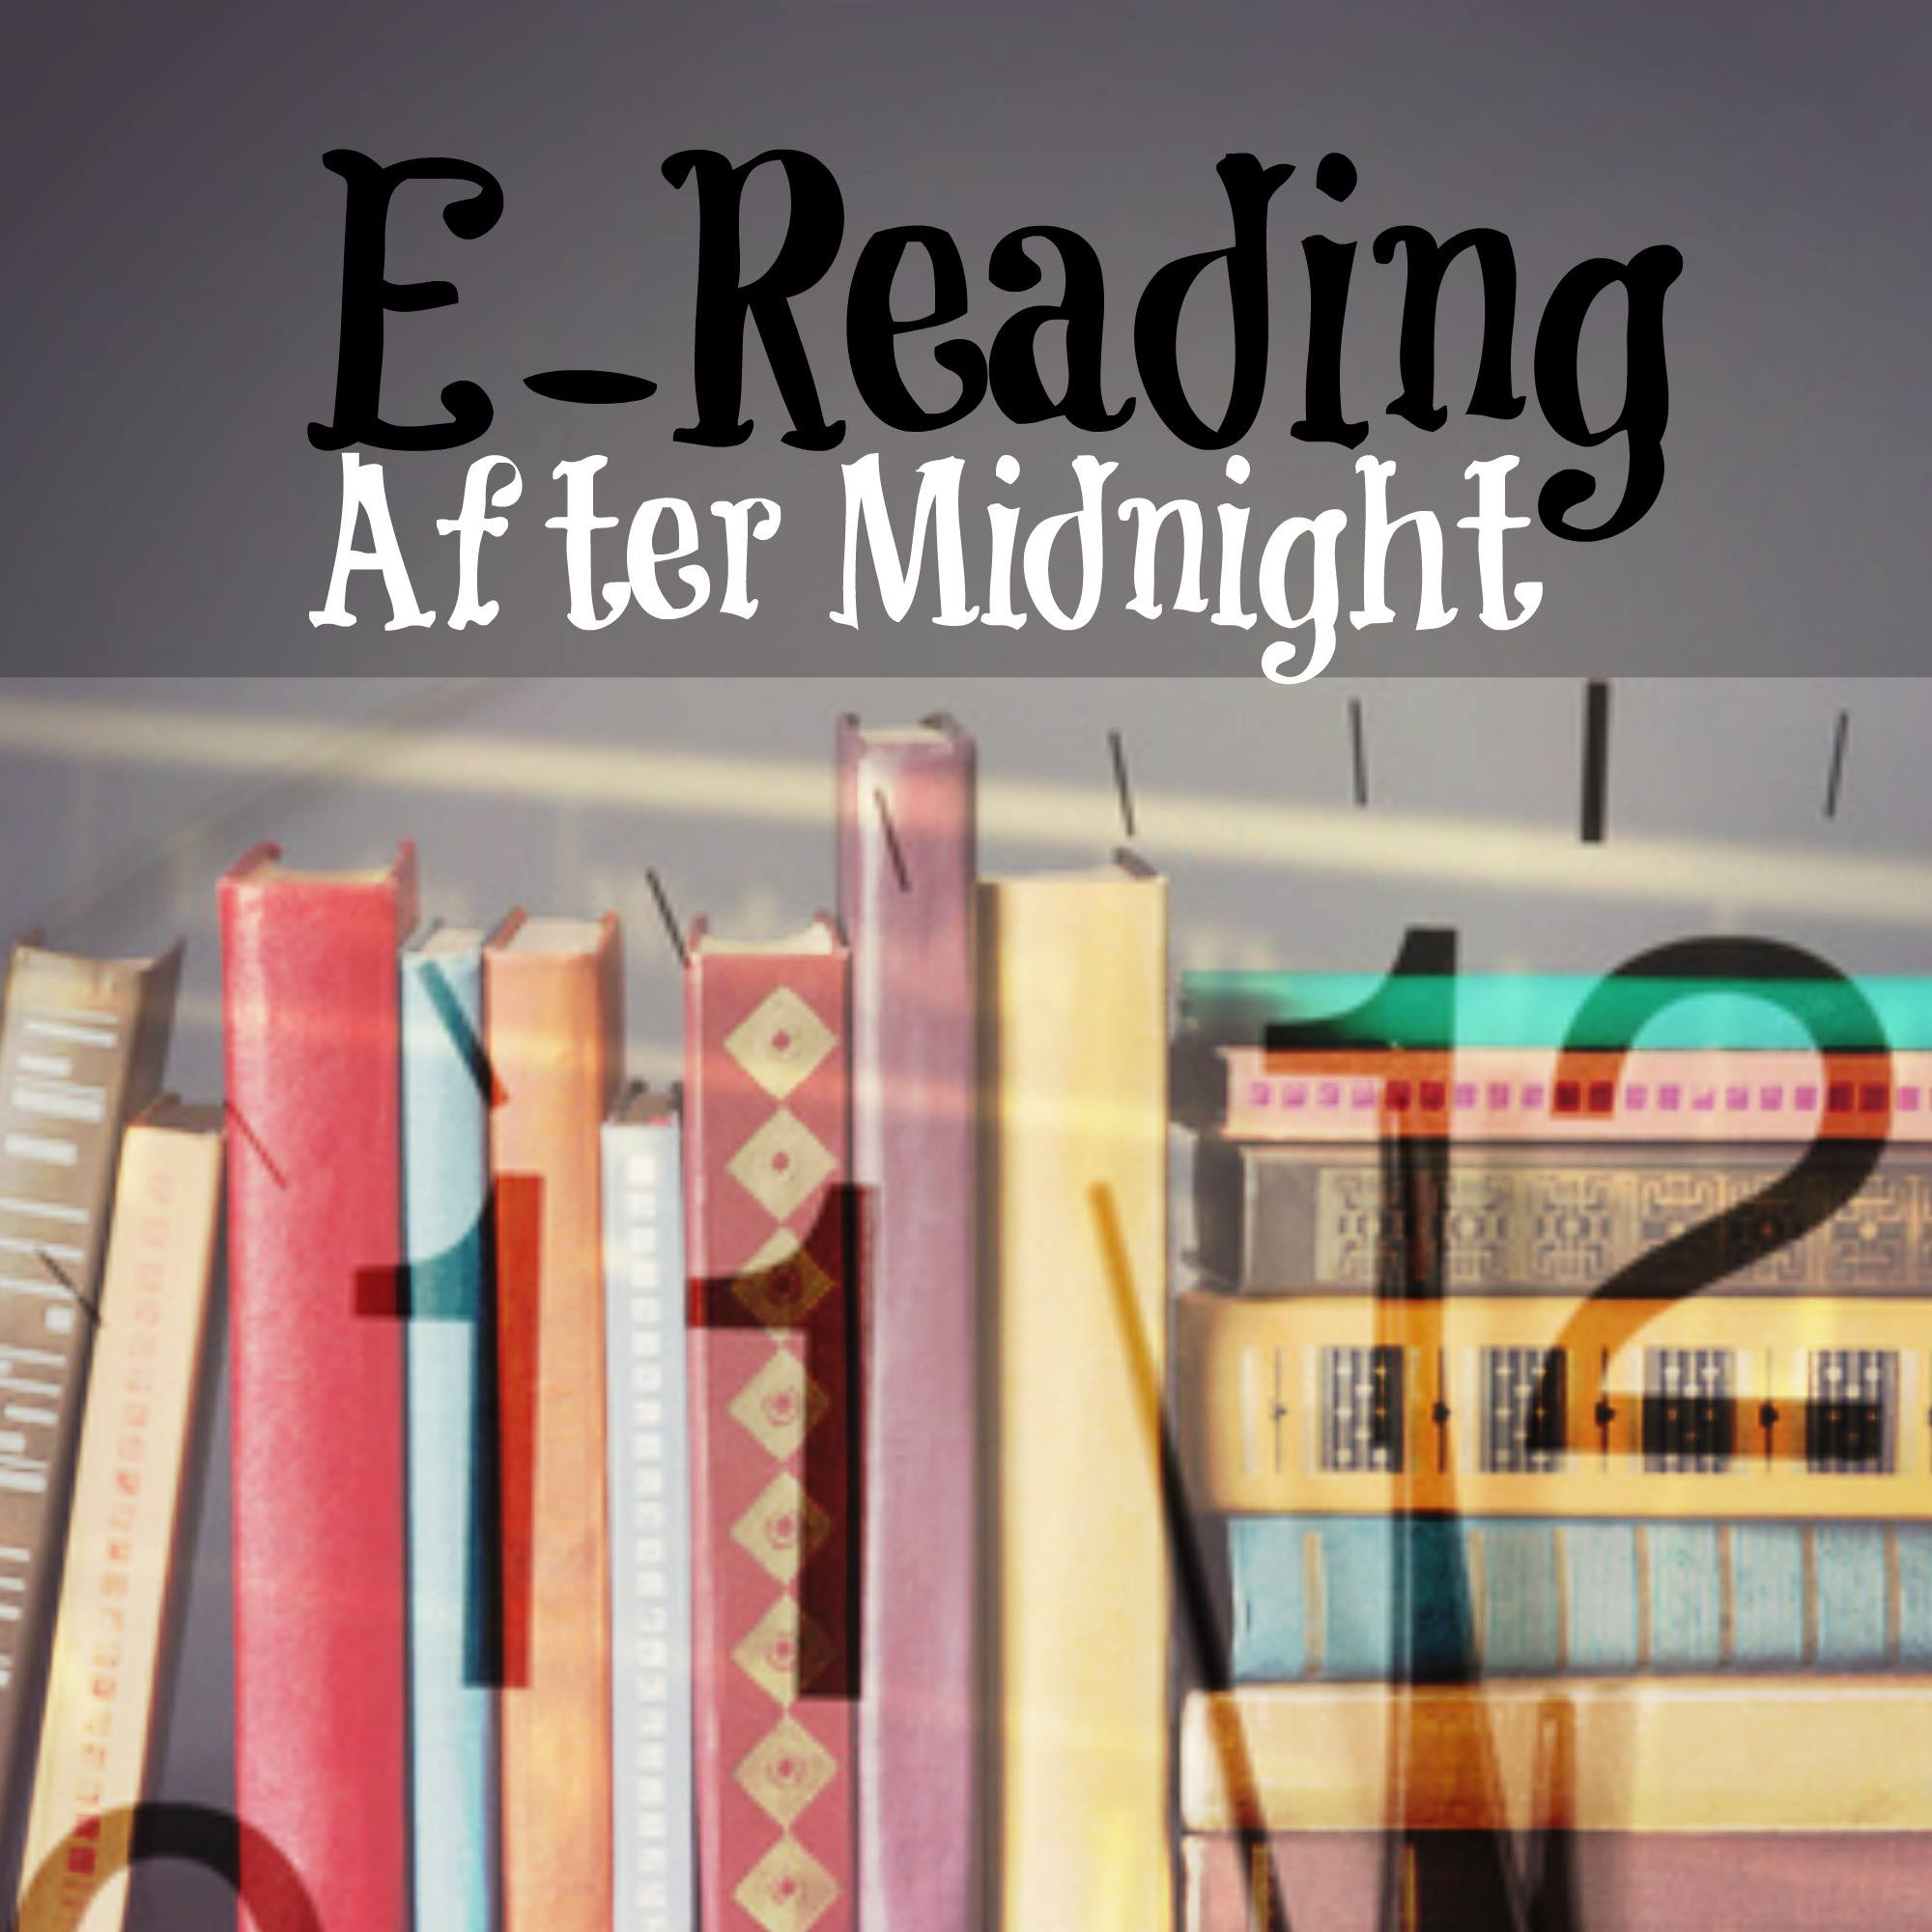 E-Reading After Midnight